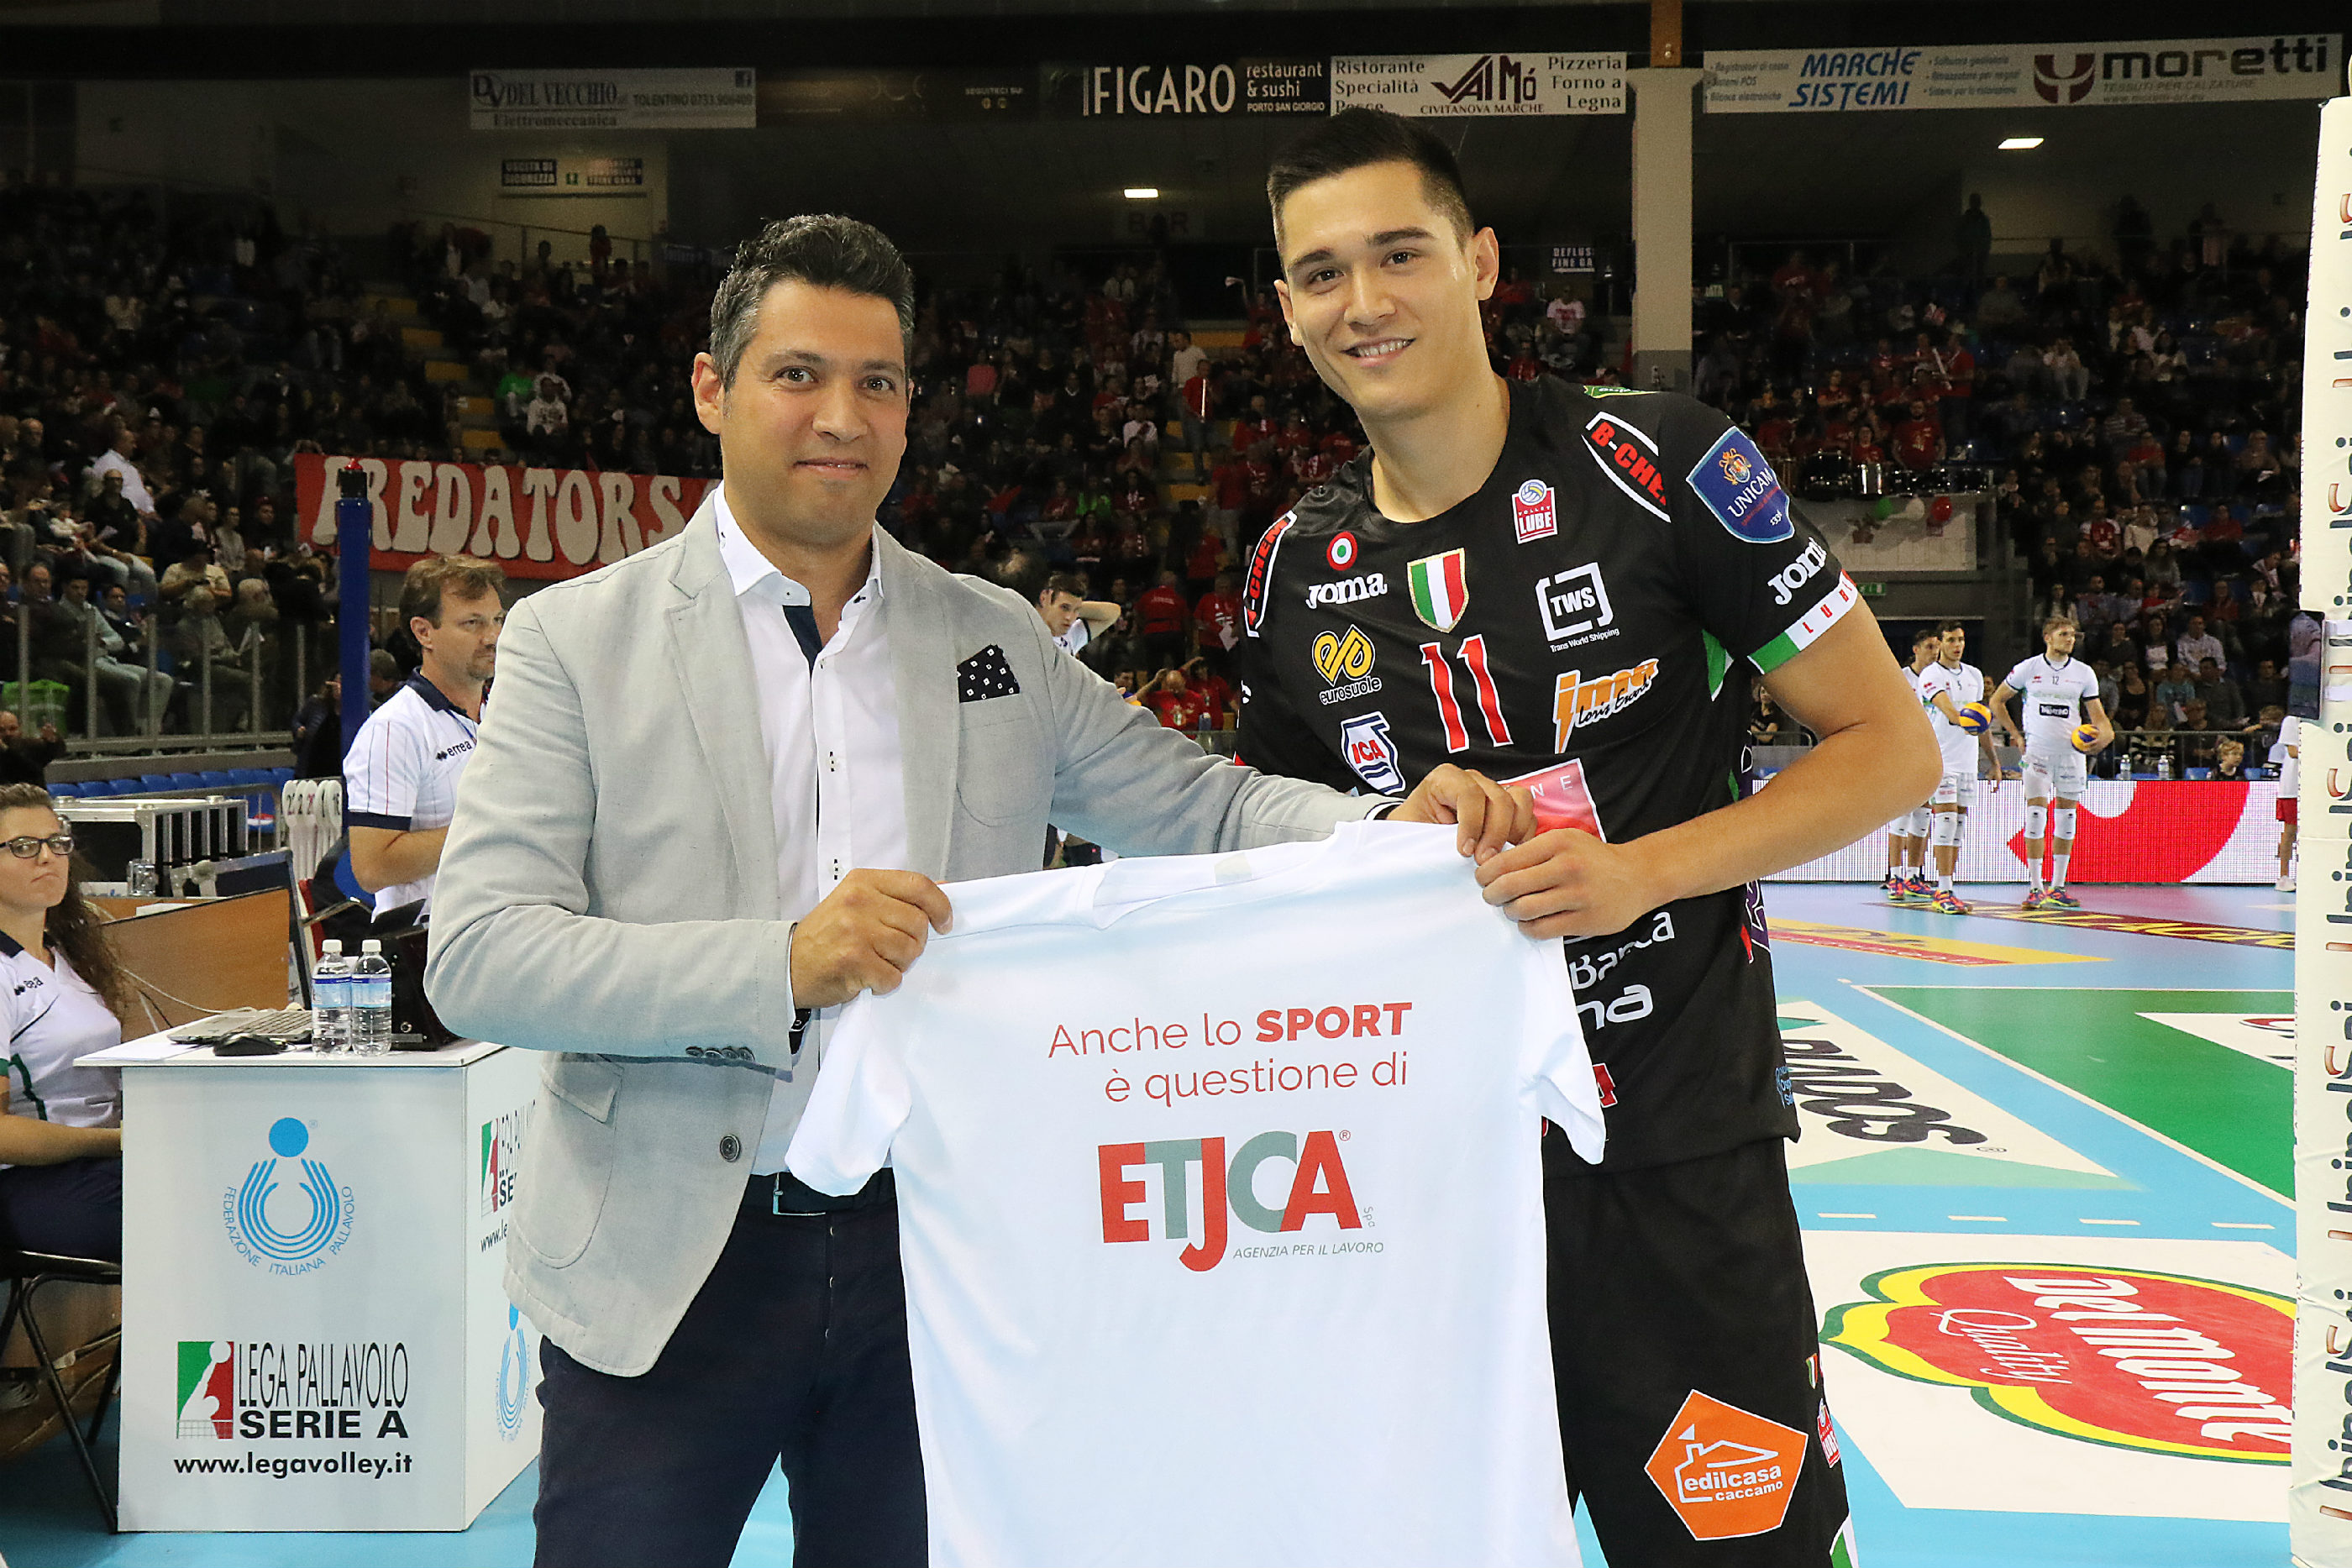 ETJCA-SPONSOR-LUBE-VOLLEY